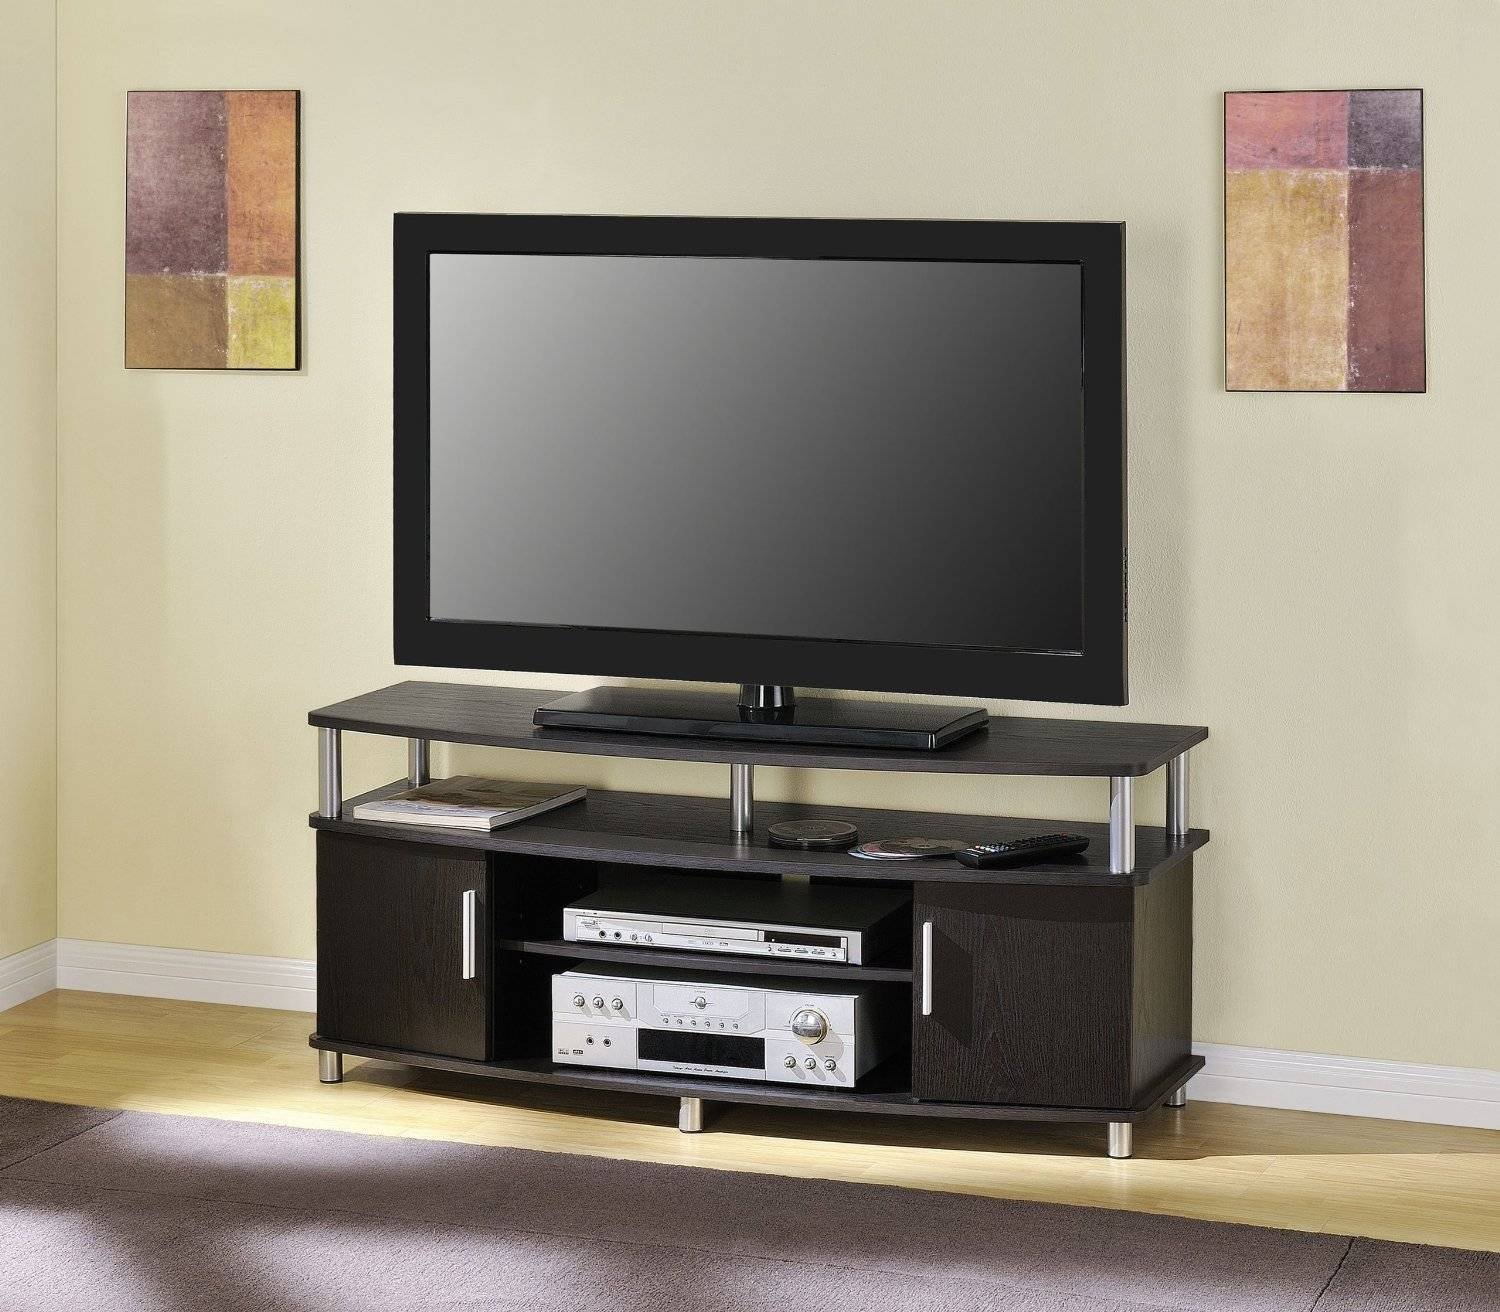 Small Black Oak Wood Tv Stand With Countertop And Cabinet Storage pertaining to Wooden Tv Stands For Flat Screens (Image 9 of 15)